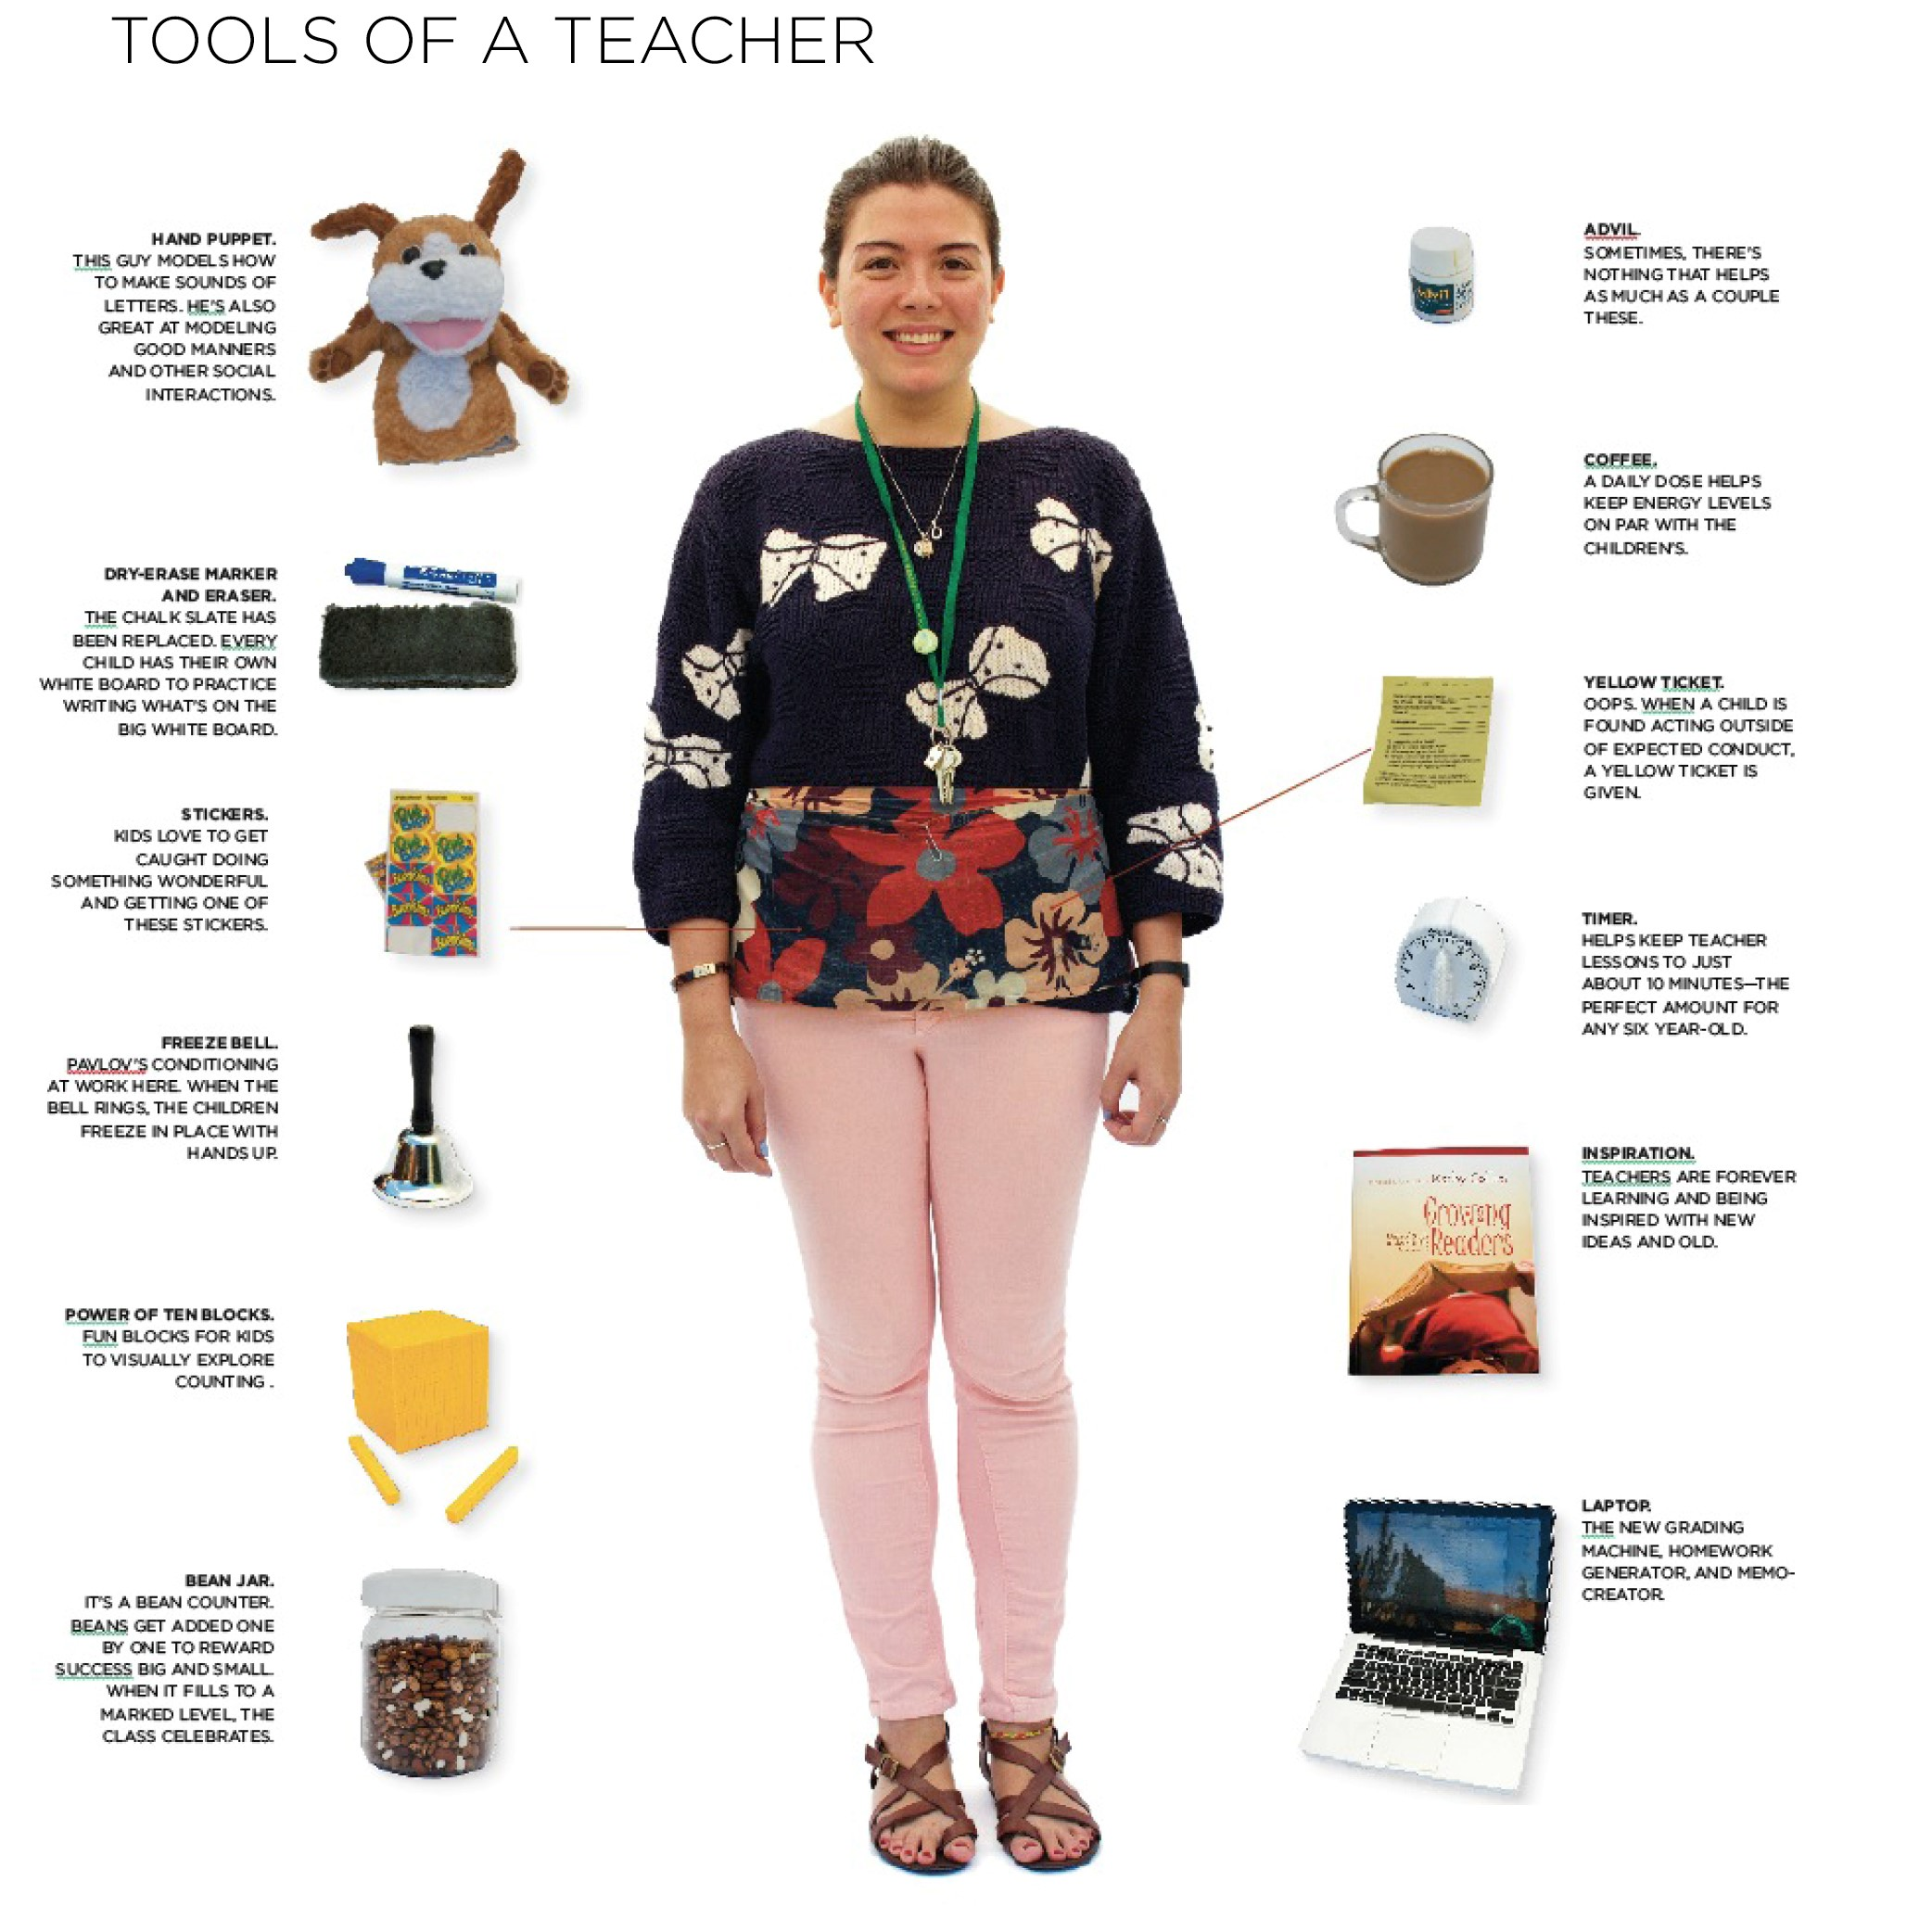 TOOLS OF A TEACHER